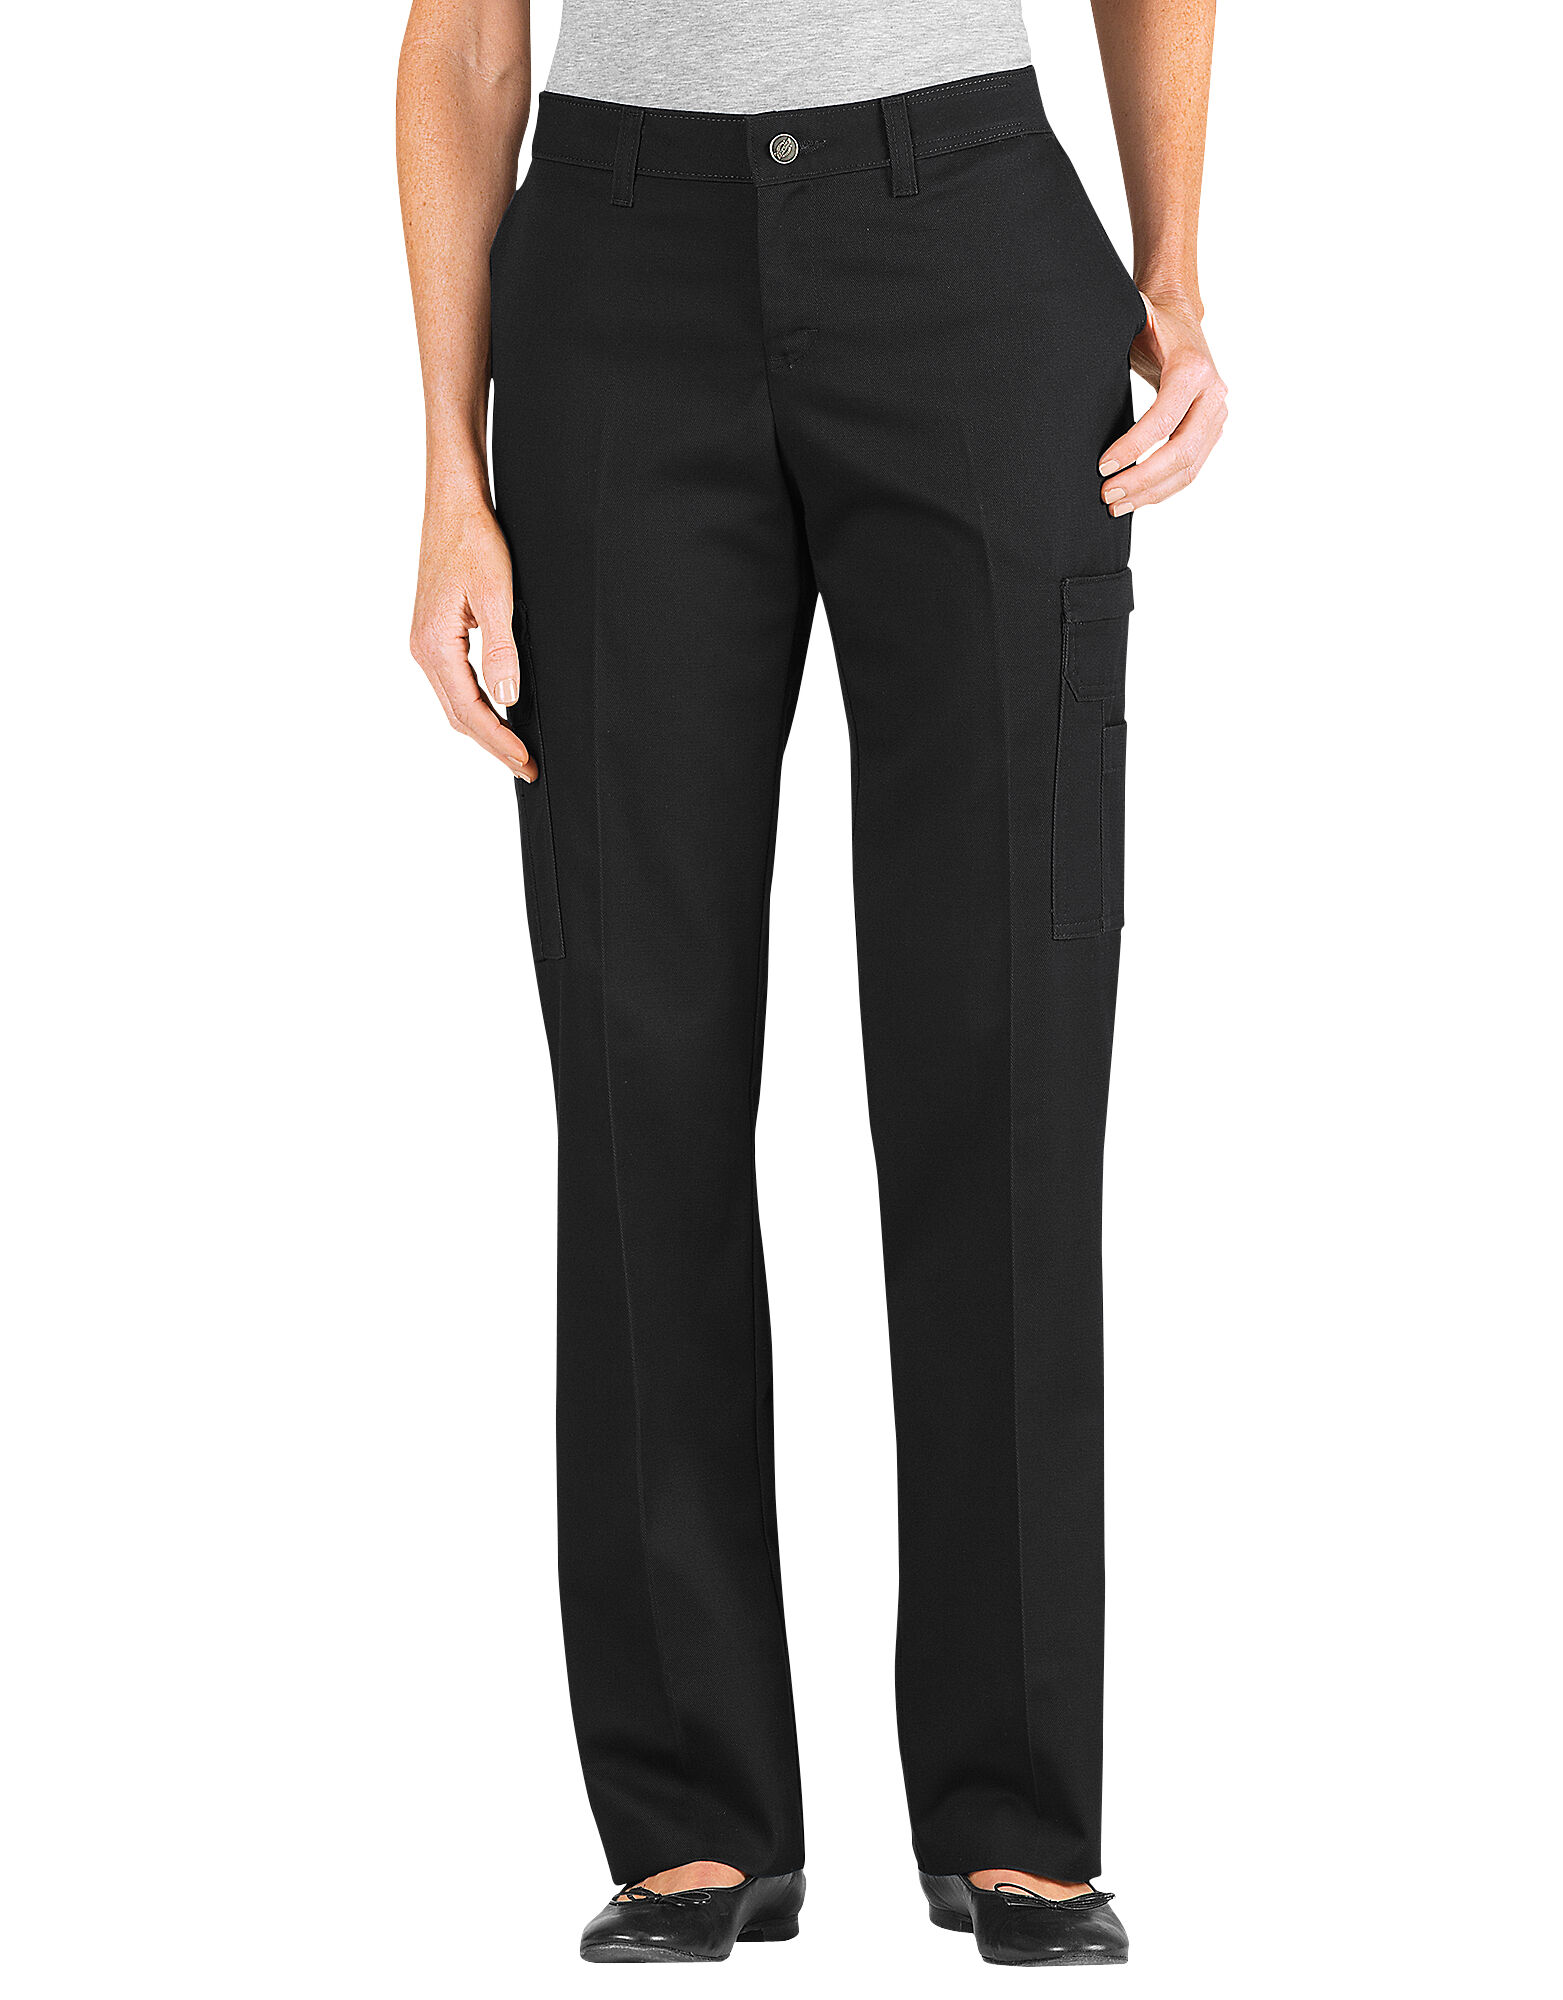 Simple  Women39s Industrial Cargo Pant Black24W X 37L Unhemmed  Walmartcom